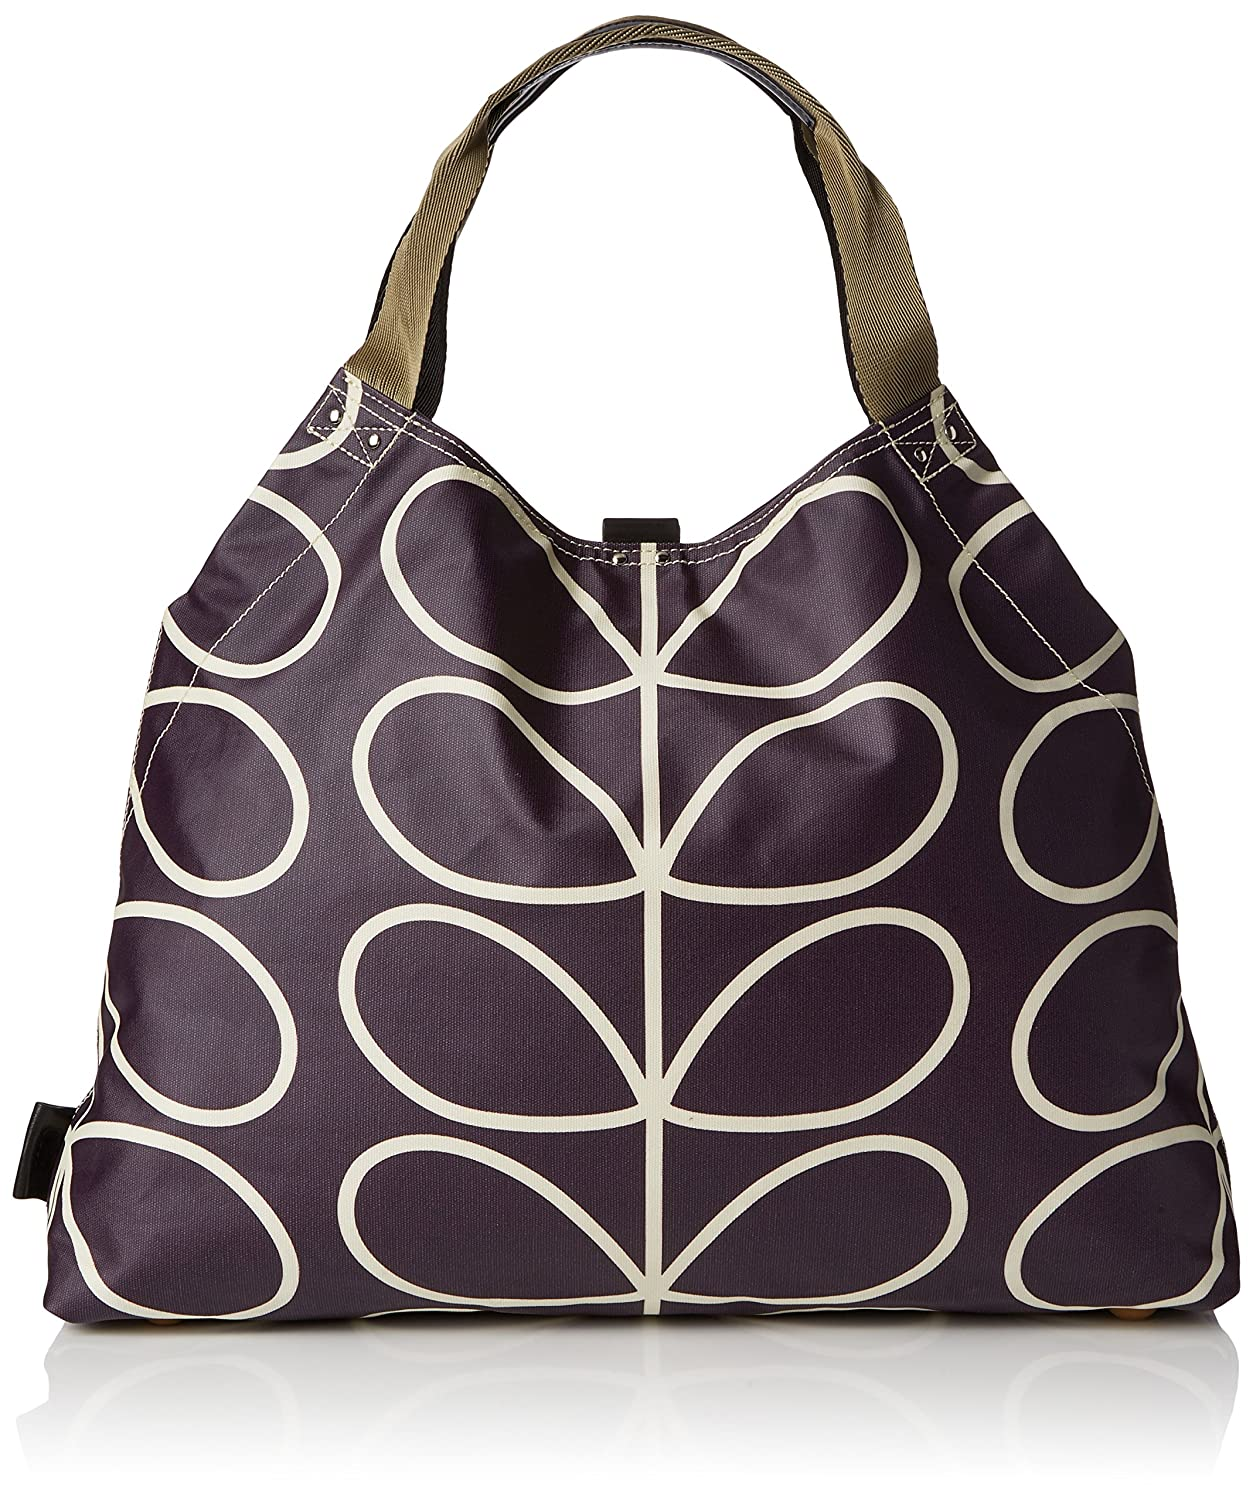 Womens Matt Laminated Linear Stem Print Large Holdall Messenger Bag Multicolour (Orchid) Orla Kiely Yis7iwZIiQ